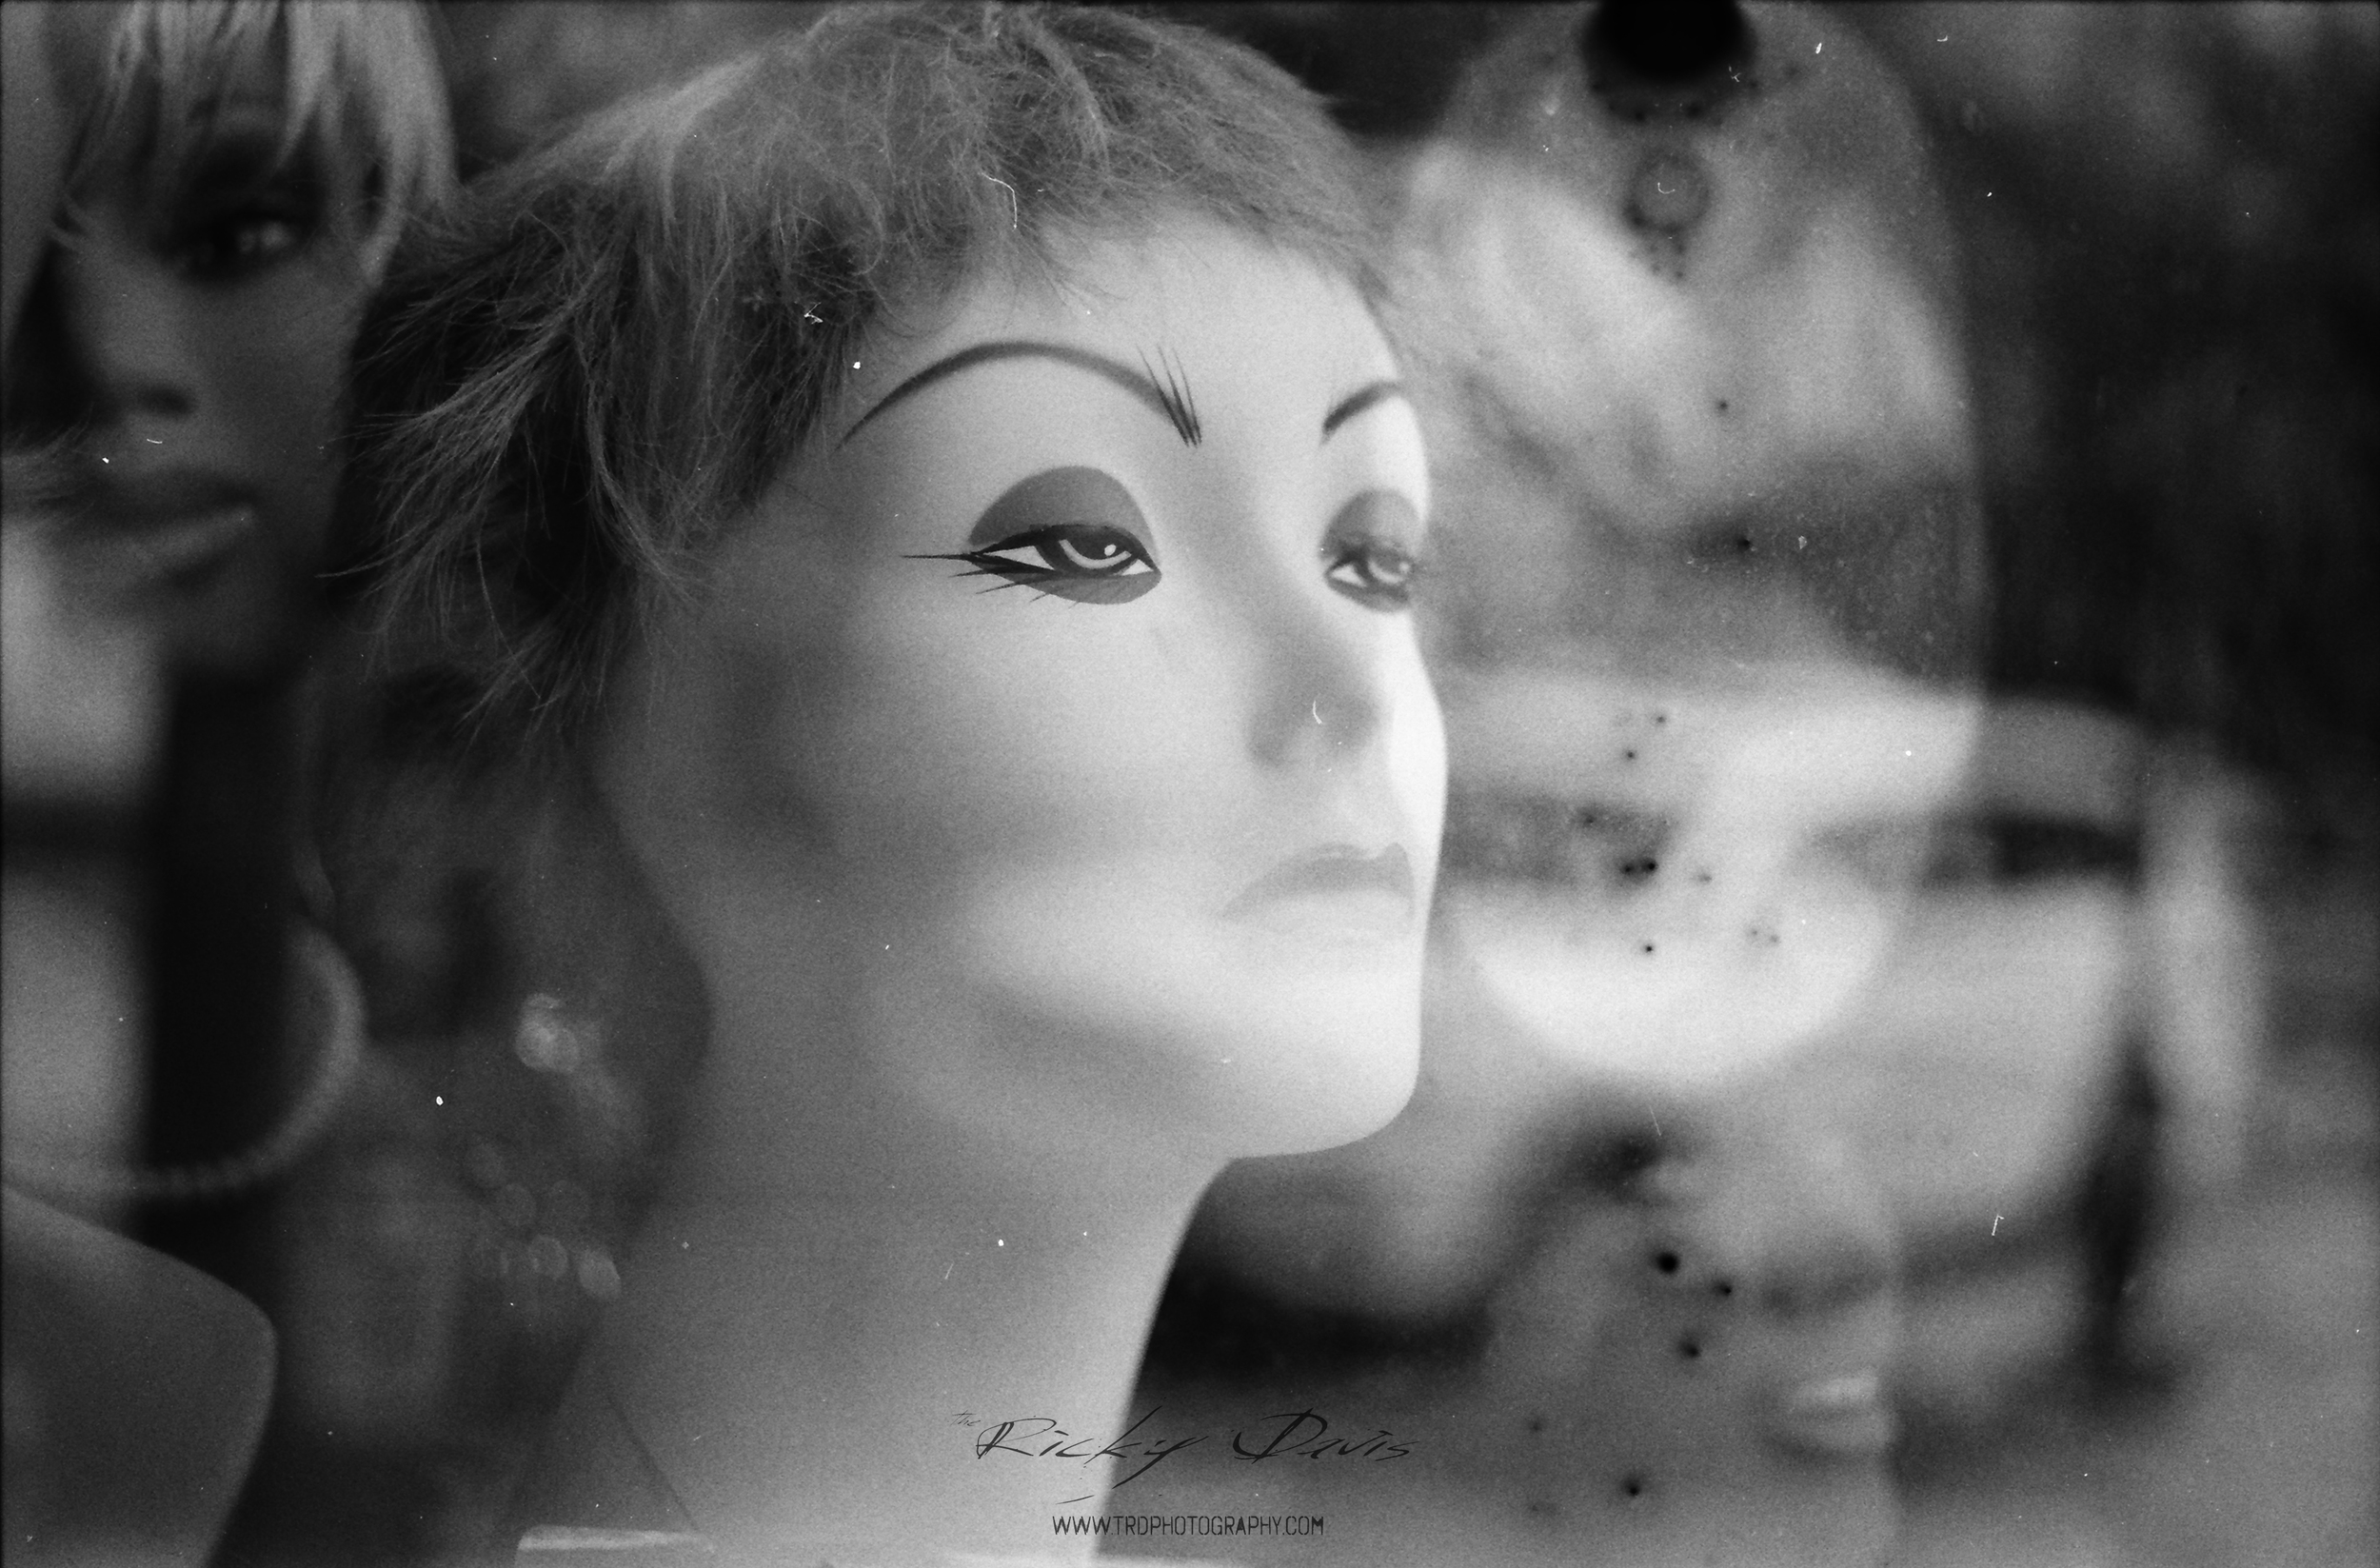 Store Window - Chattanooga, TN - Film - Expired Neopan SS - Camera - Minolta XG 1 - Photographer Ricky Davis